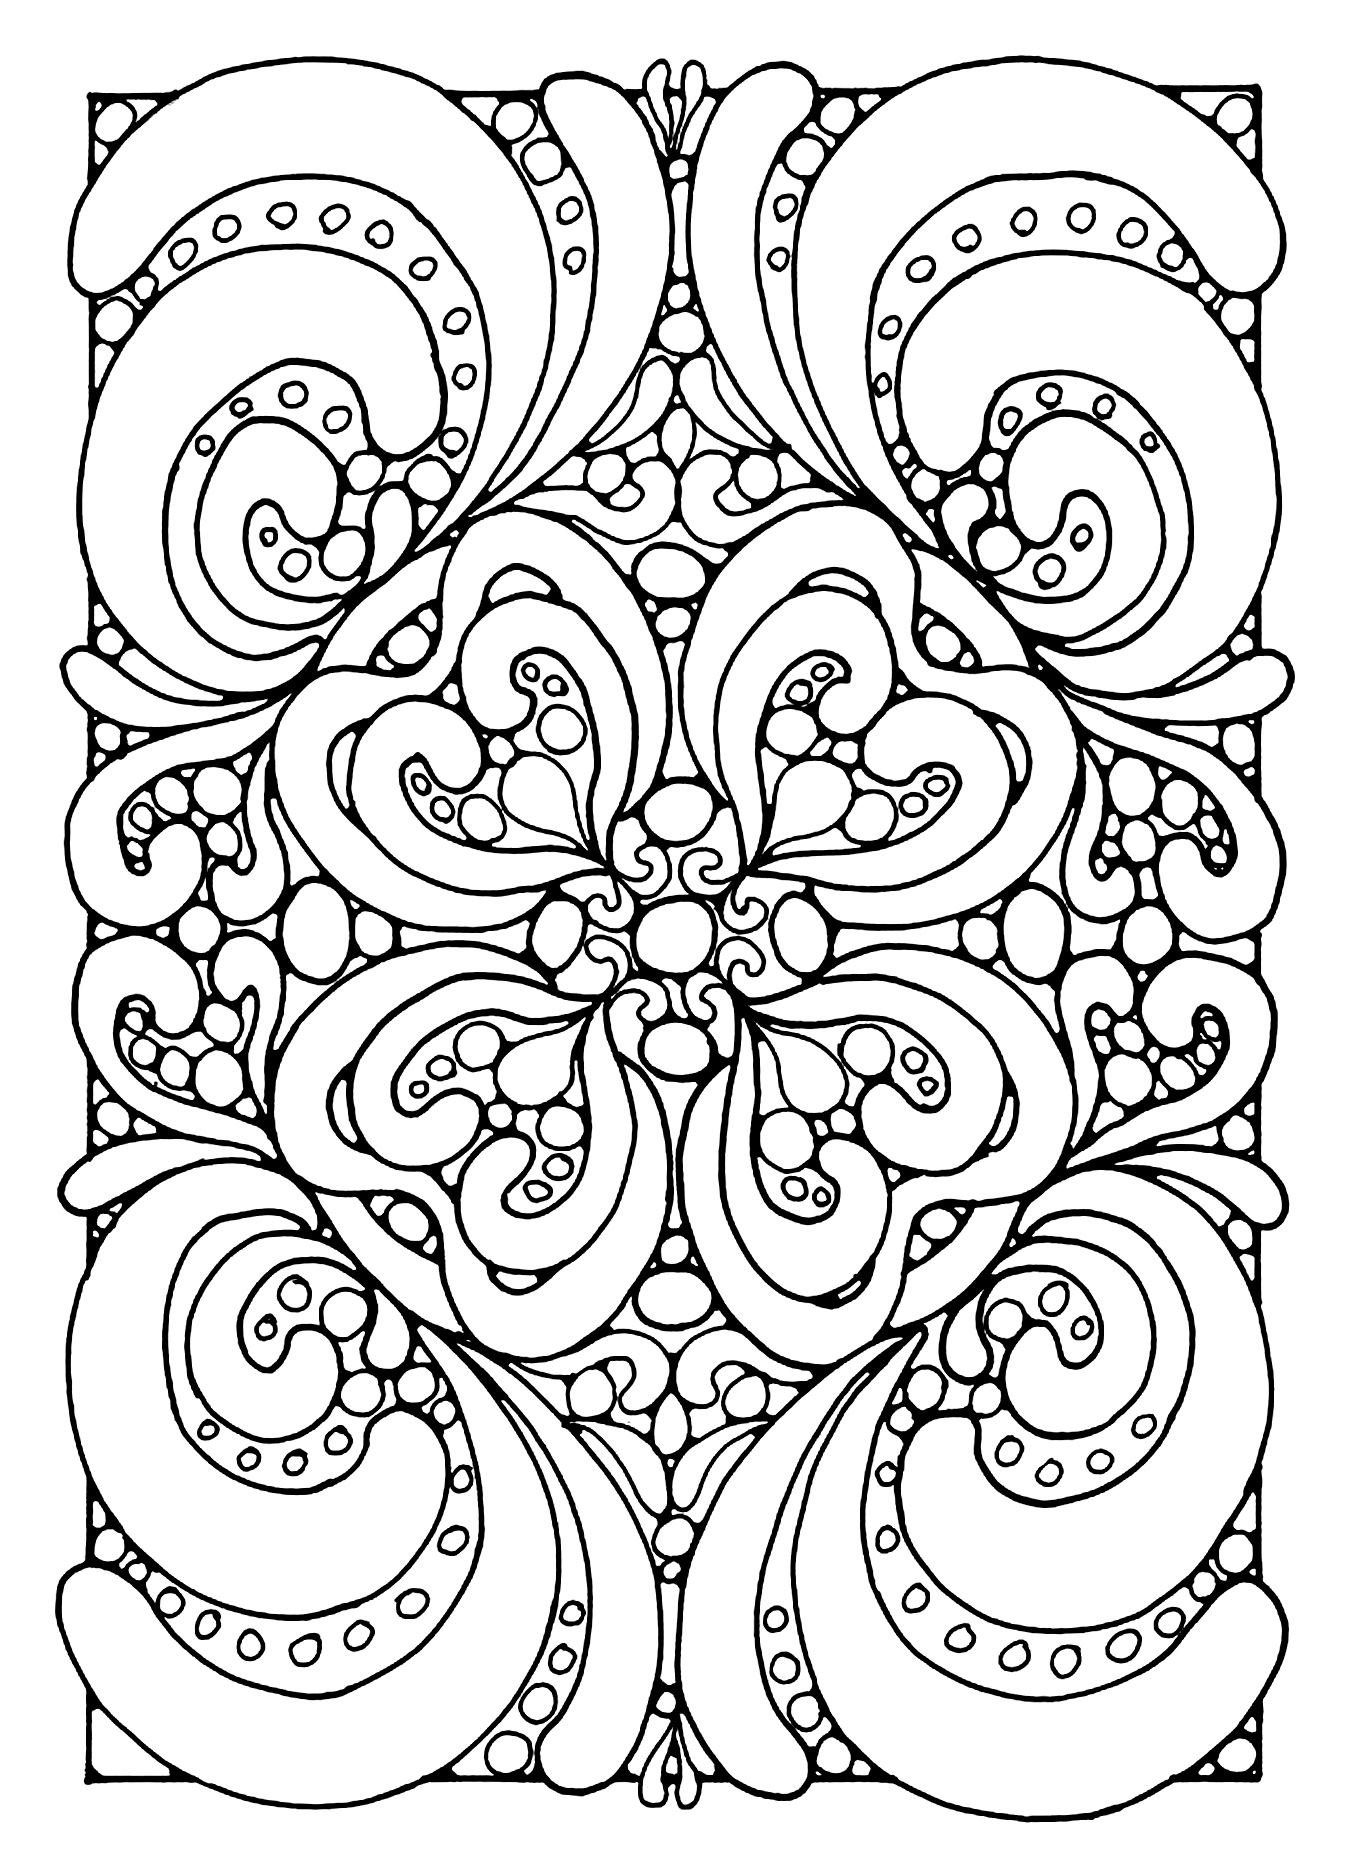 on adult coloring pages for anxiety